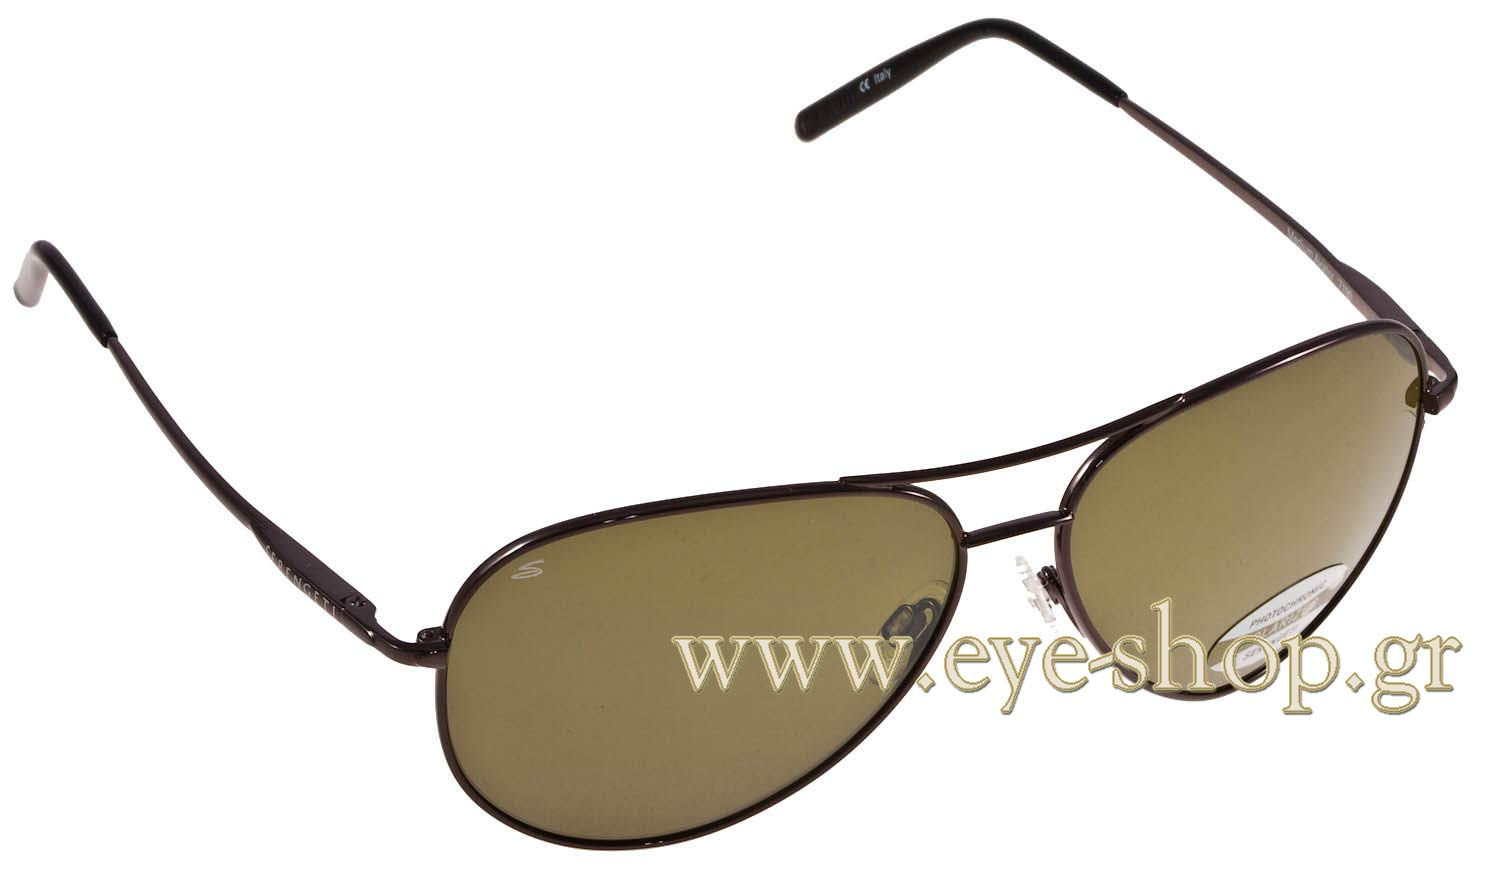 e297eacad2 SUNGLASSES Serengeti 7190 Medium Aviator Shiny Gun